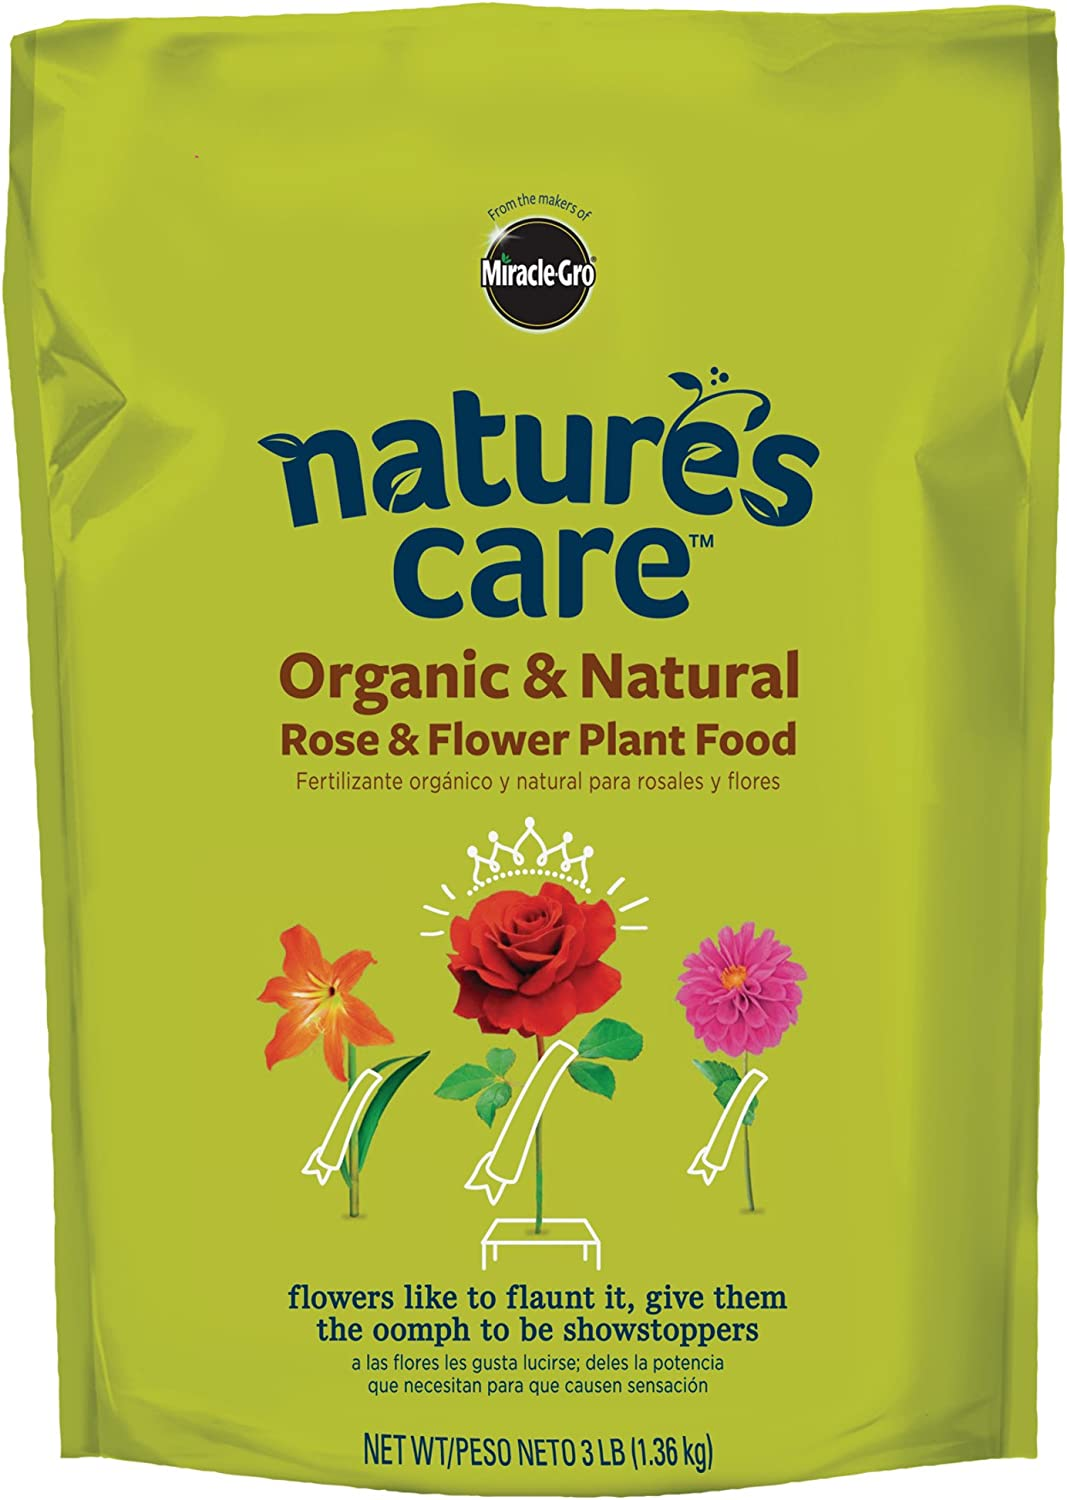 Miracle-Gro Nature's Care Organic & Natural Rose & Flower Plant Food Fertilizer